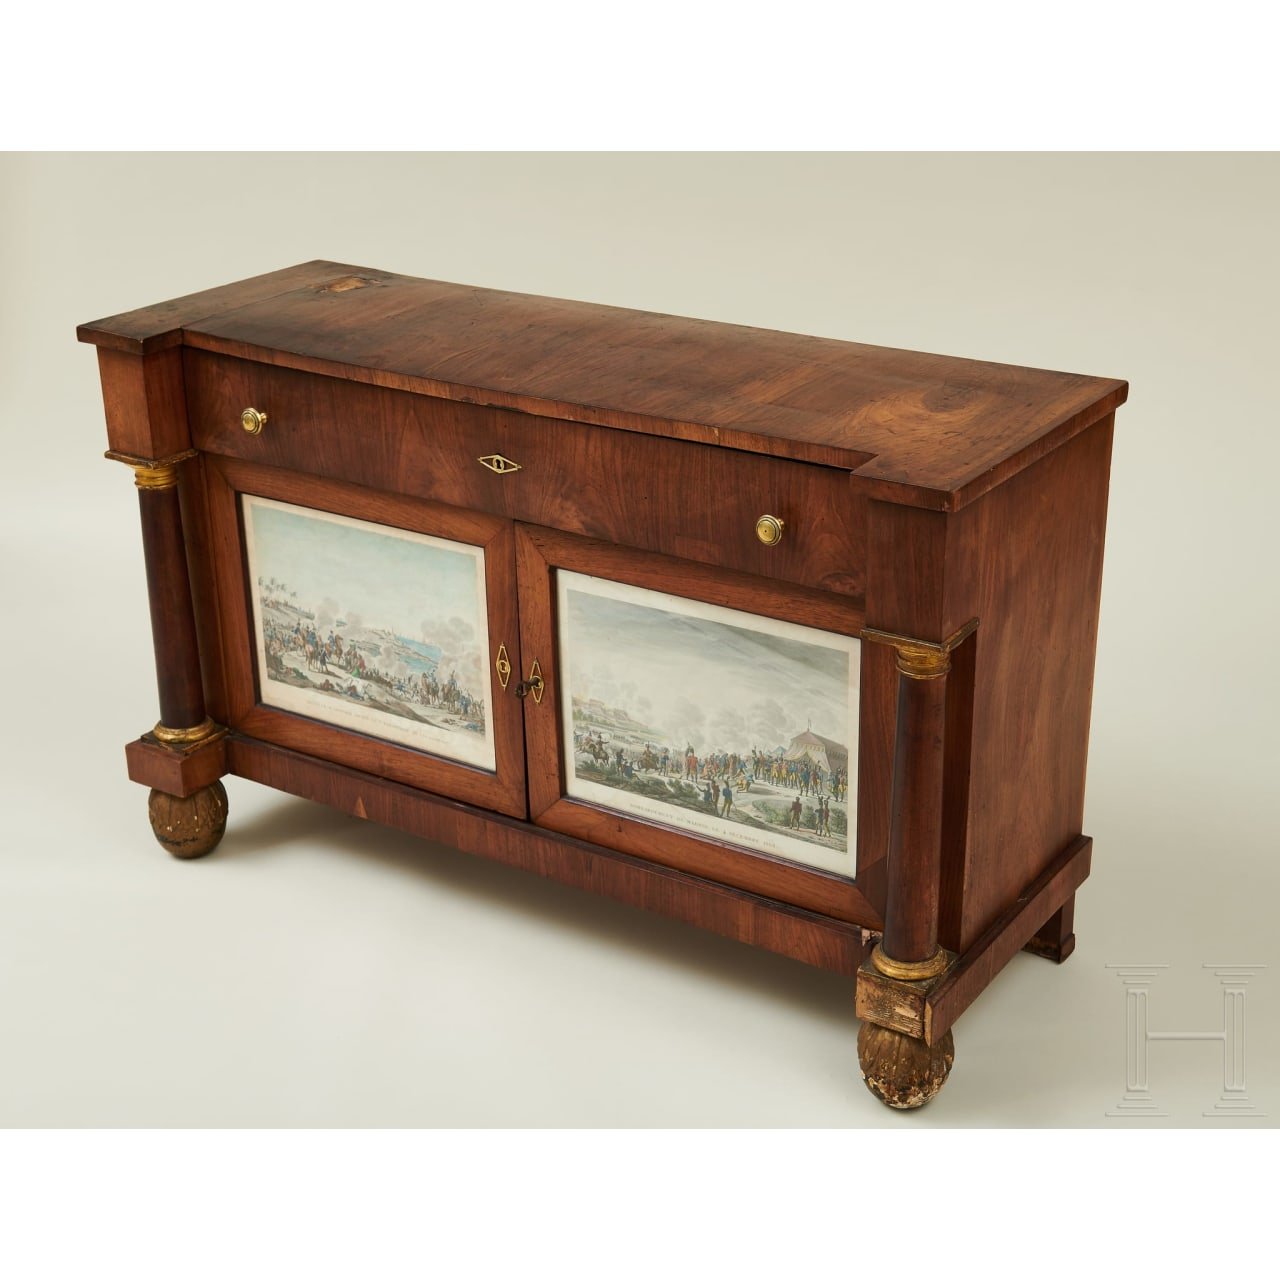 Two Tuscan Empire-style sideboards, early 19th century